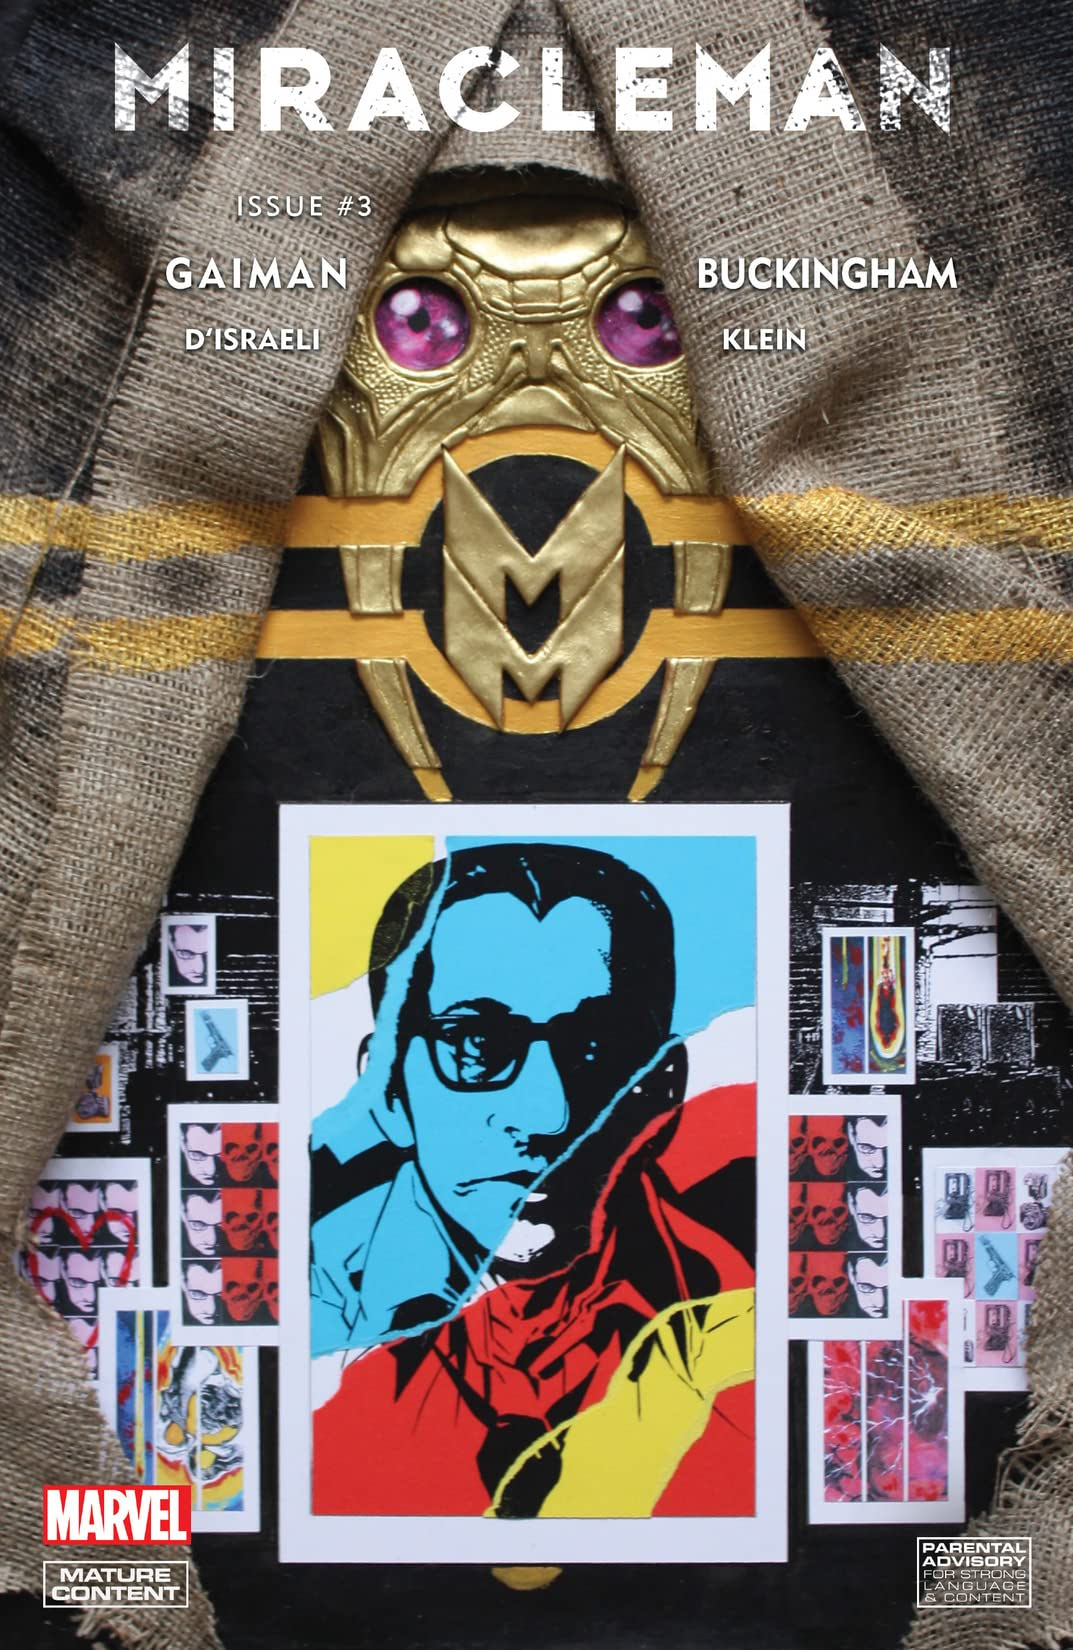 Miracleman by Gaiman & Buckingham #3